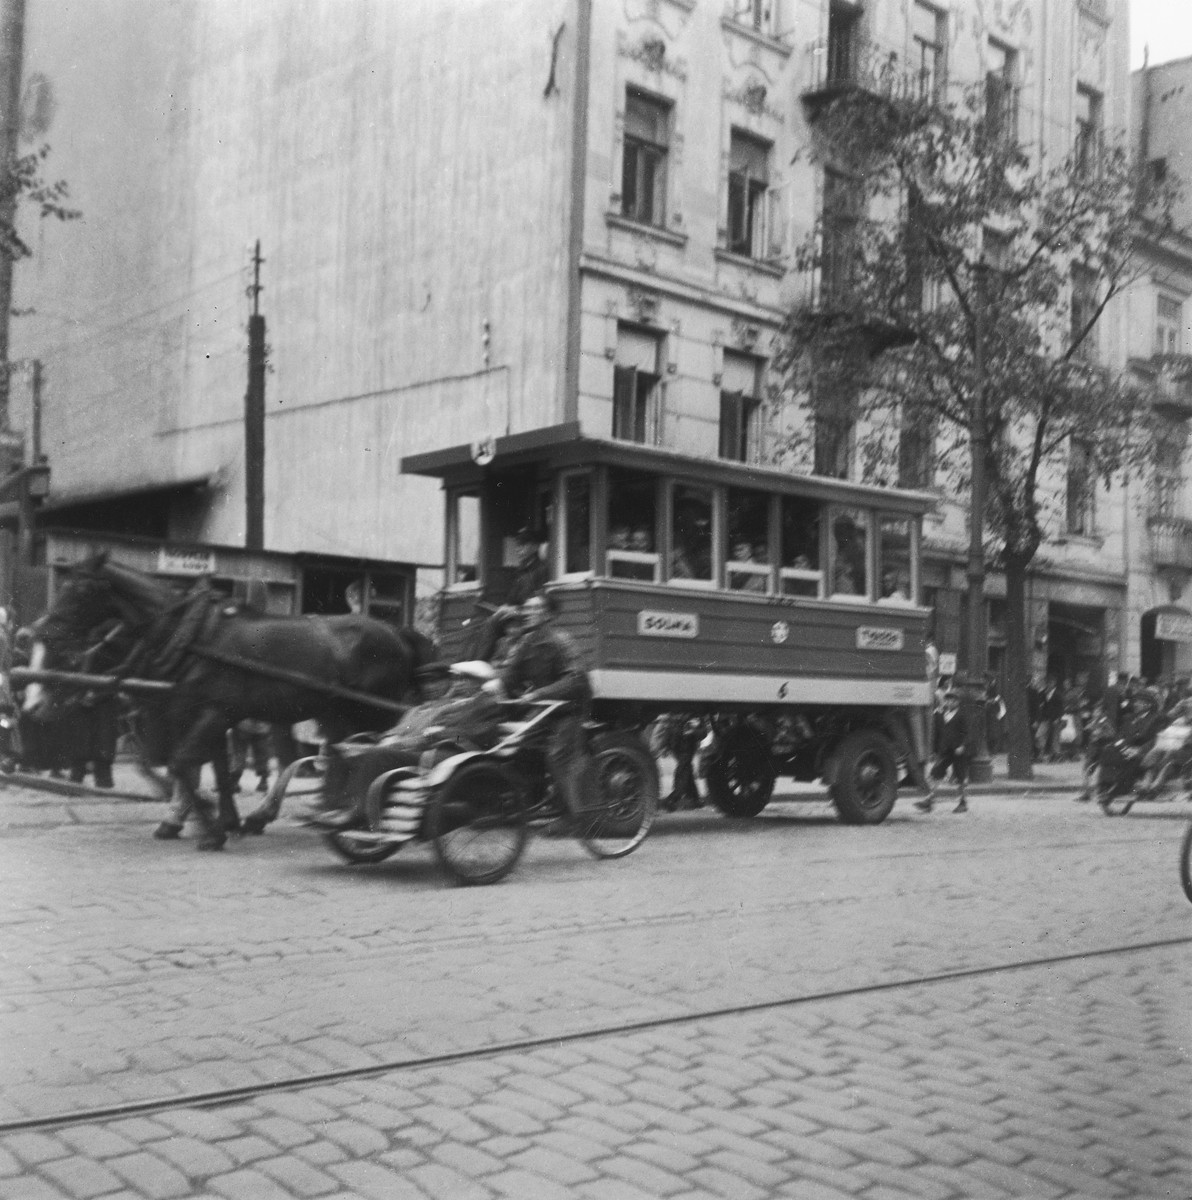 """Horse-drawn streetcars and rickshaws ride down a street in the Warsaw ghetto.   Joest's original caption reads: """"There were horse-drawn streetcars, and there were the rickshaws.  They were faster, but they were almost more expensive, I was told."""""""